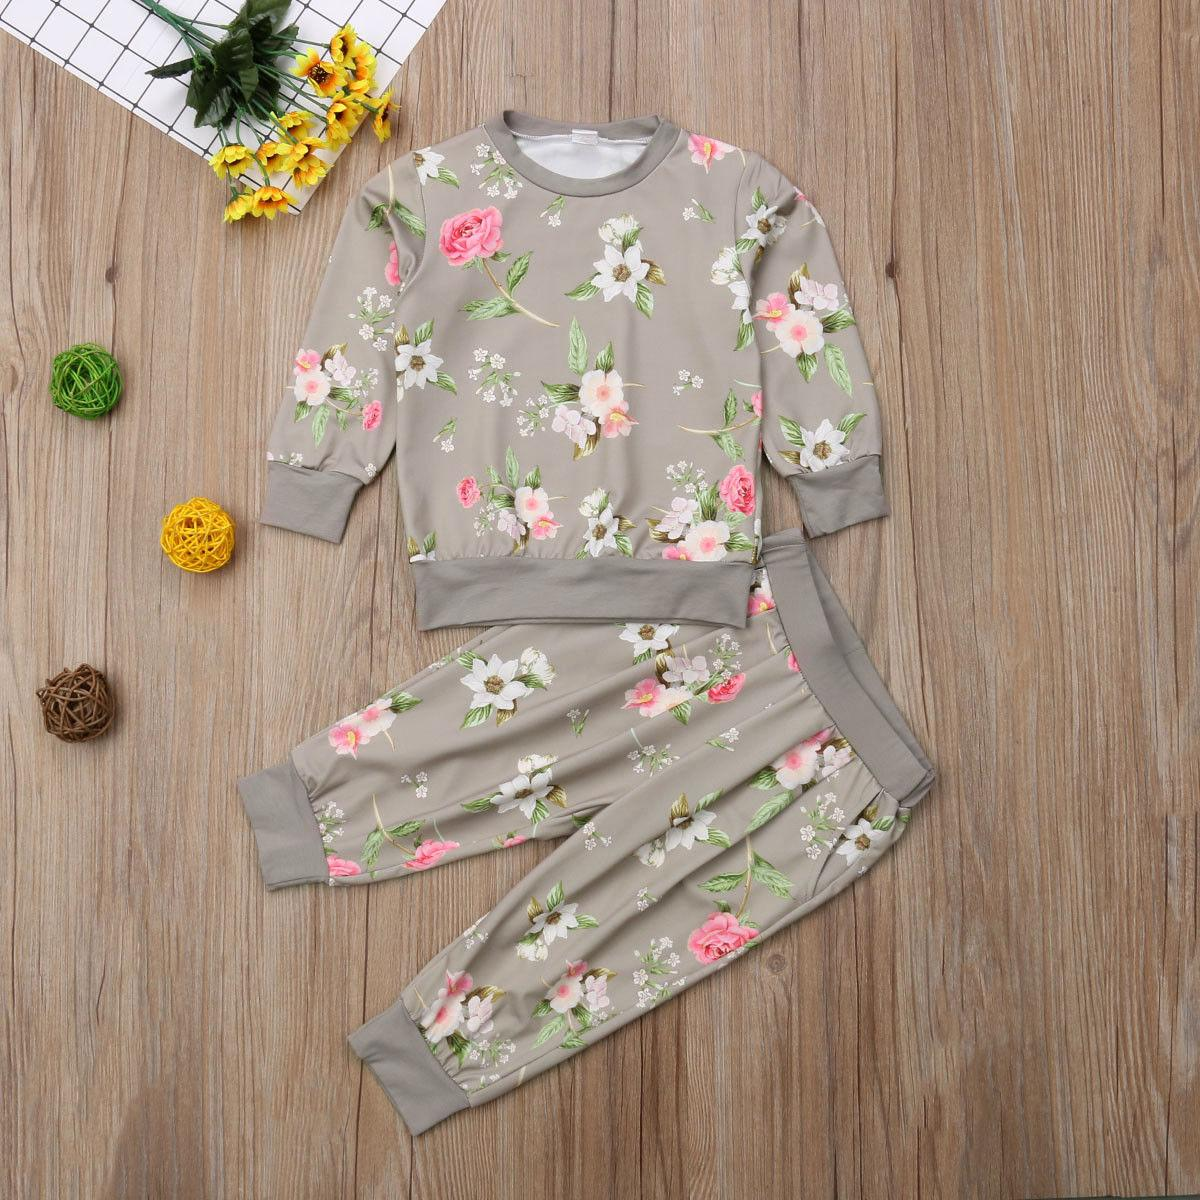 UK Flowers Kids Baby Girl Cotton Clothes T-shirt Top Pants Outfit Sets Tracksuit